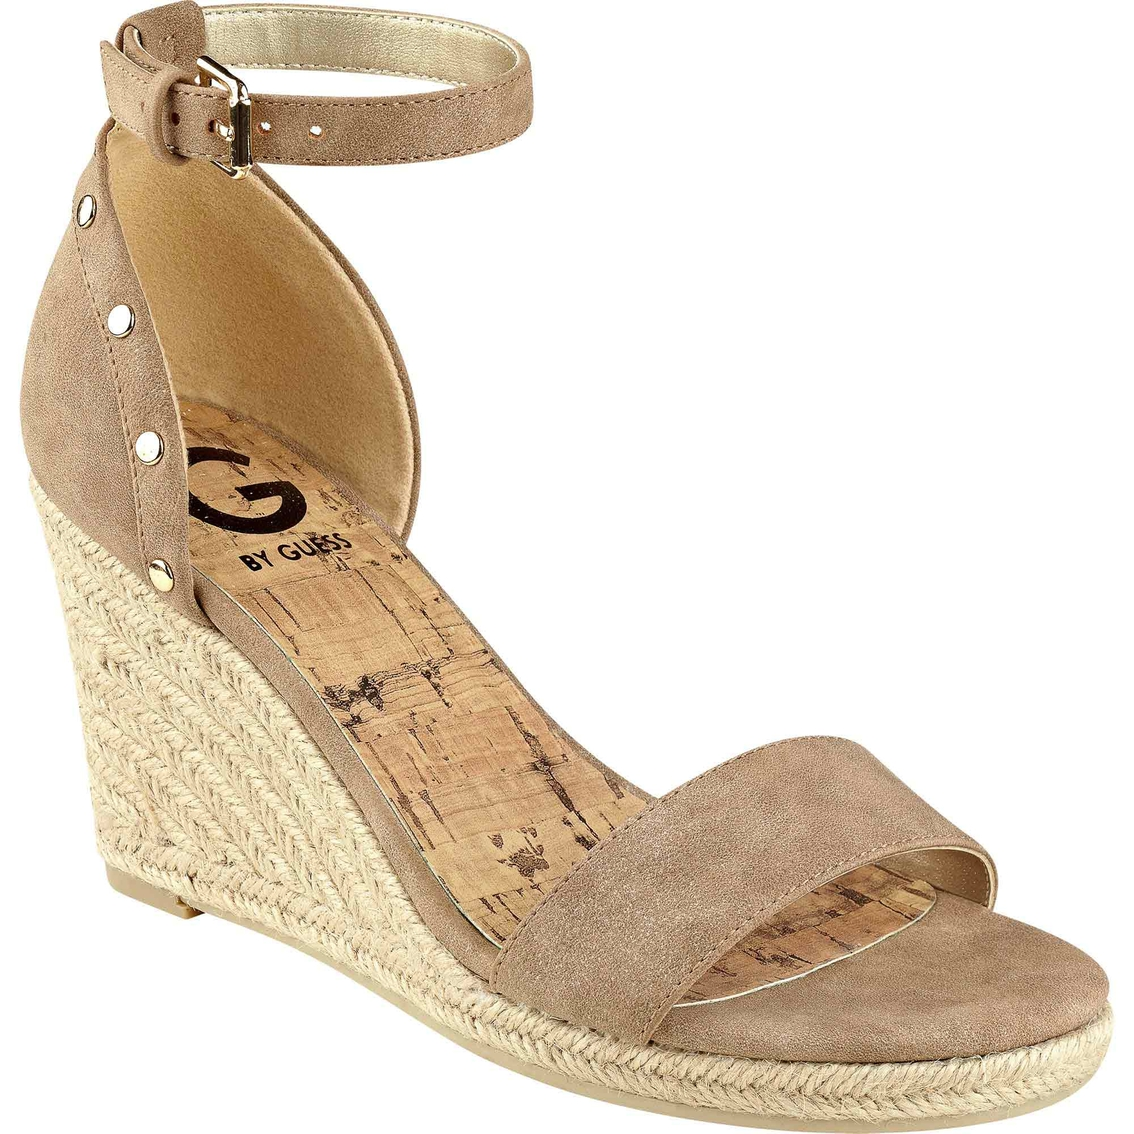 460c19999f3 G By Guess Bae Ankle Strap Wedge Sandals